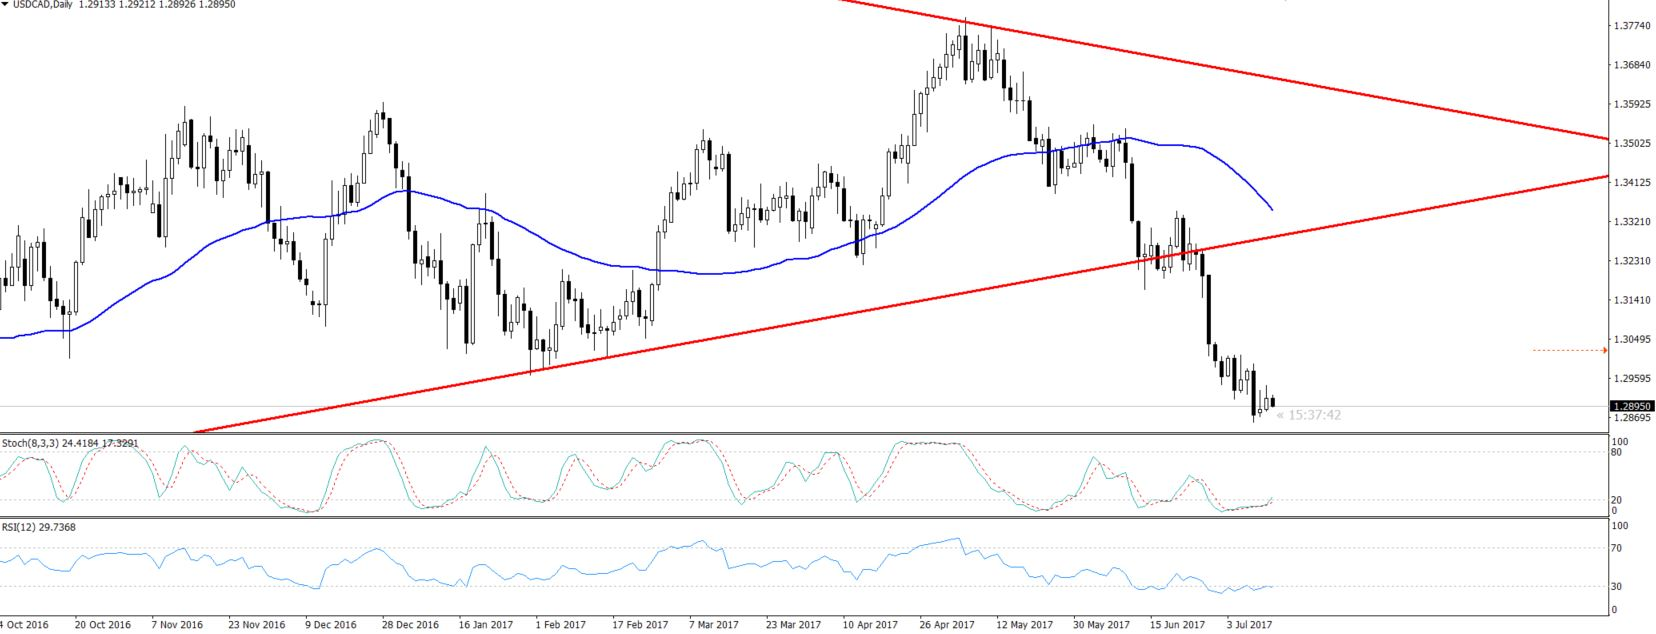 USDCAD - Daily Chart - Symmetric Triangle Patttern